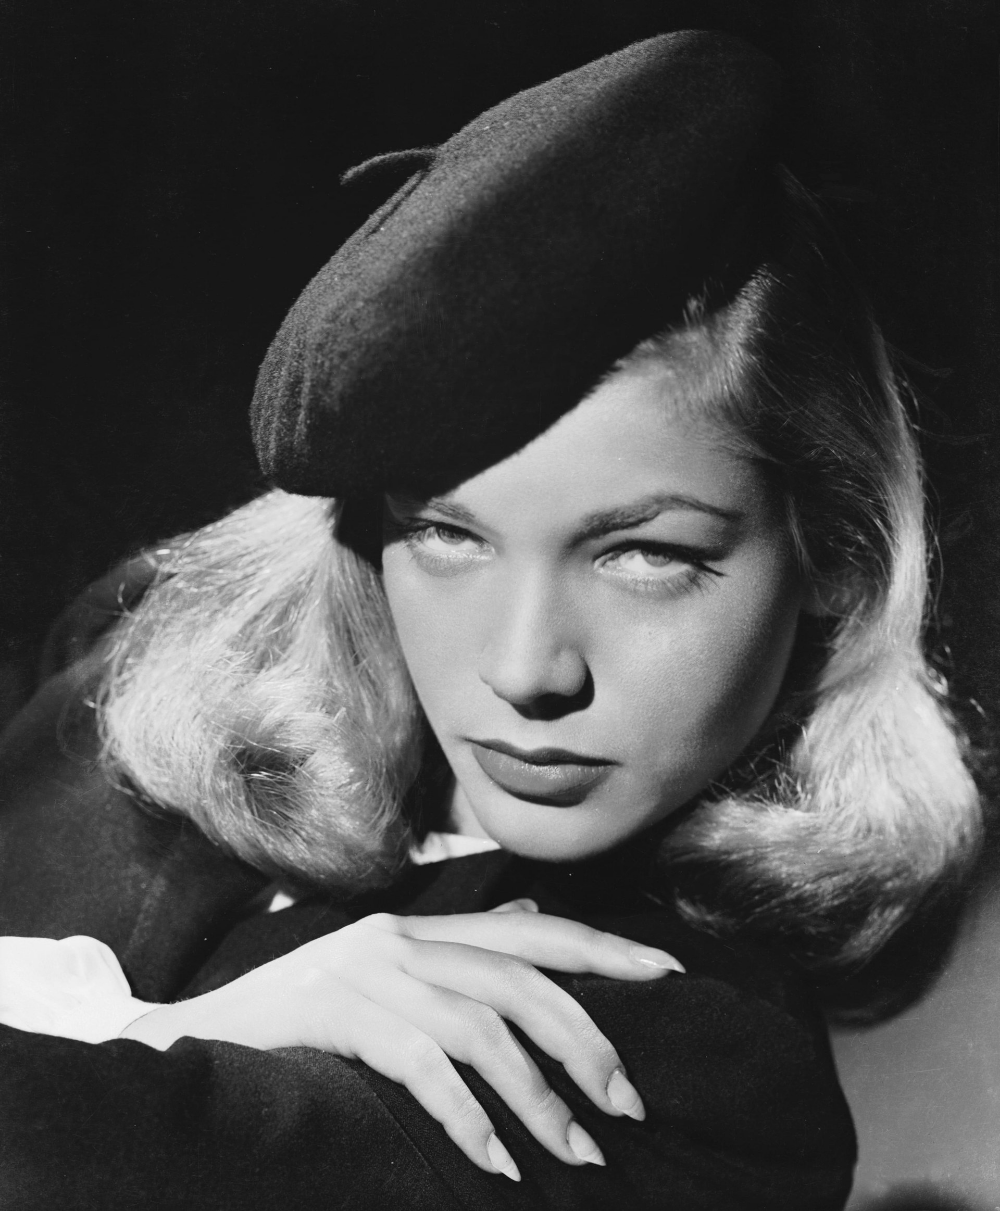 Lauren Bacall nicknamed The Look on a shooting in the 40s